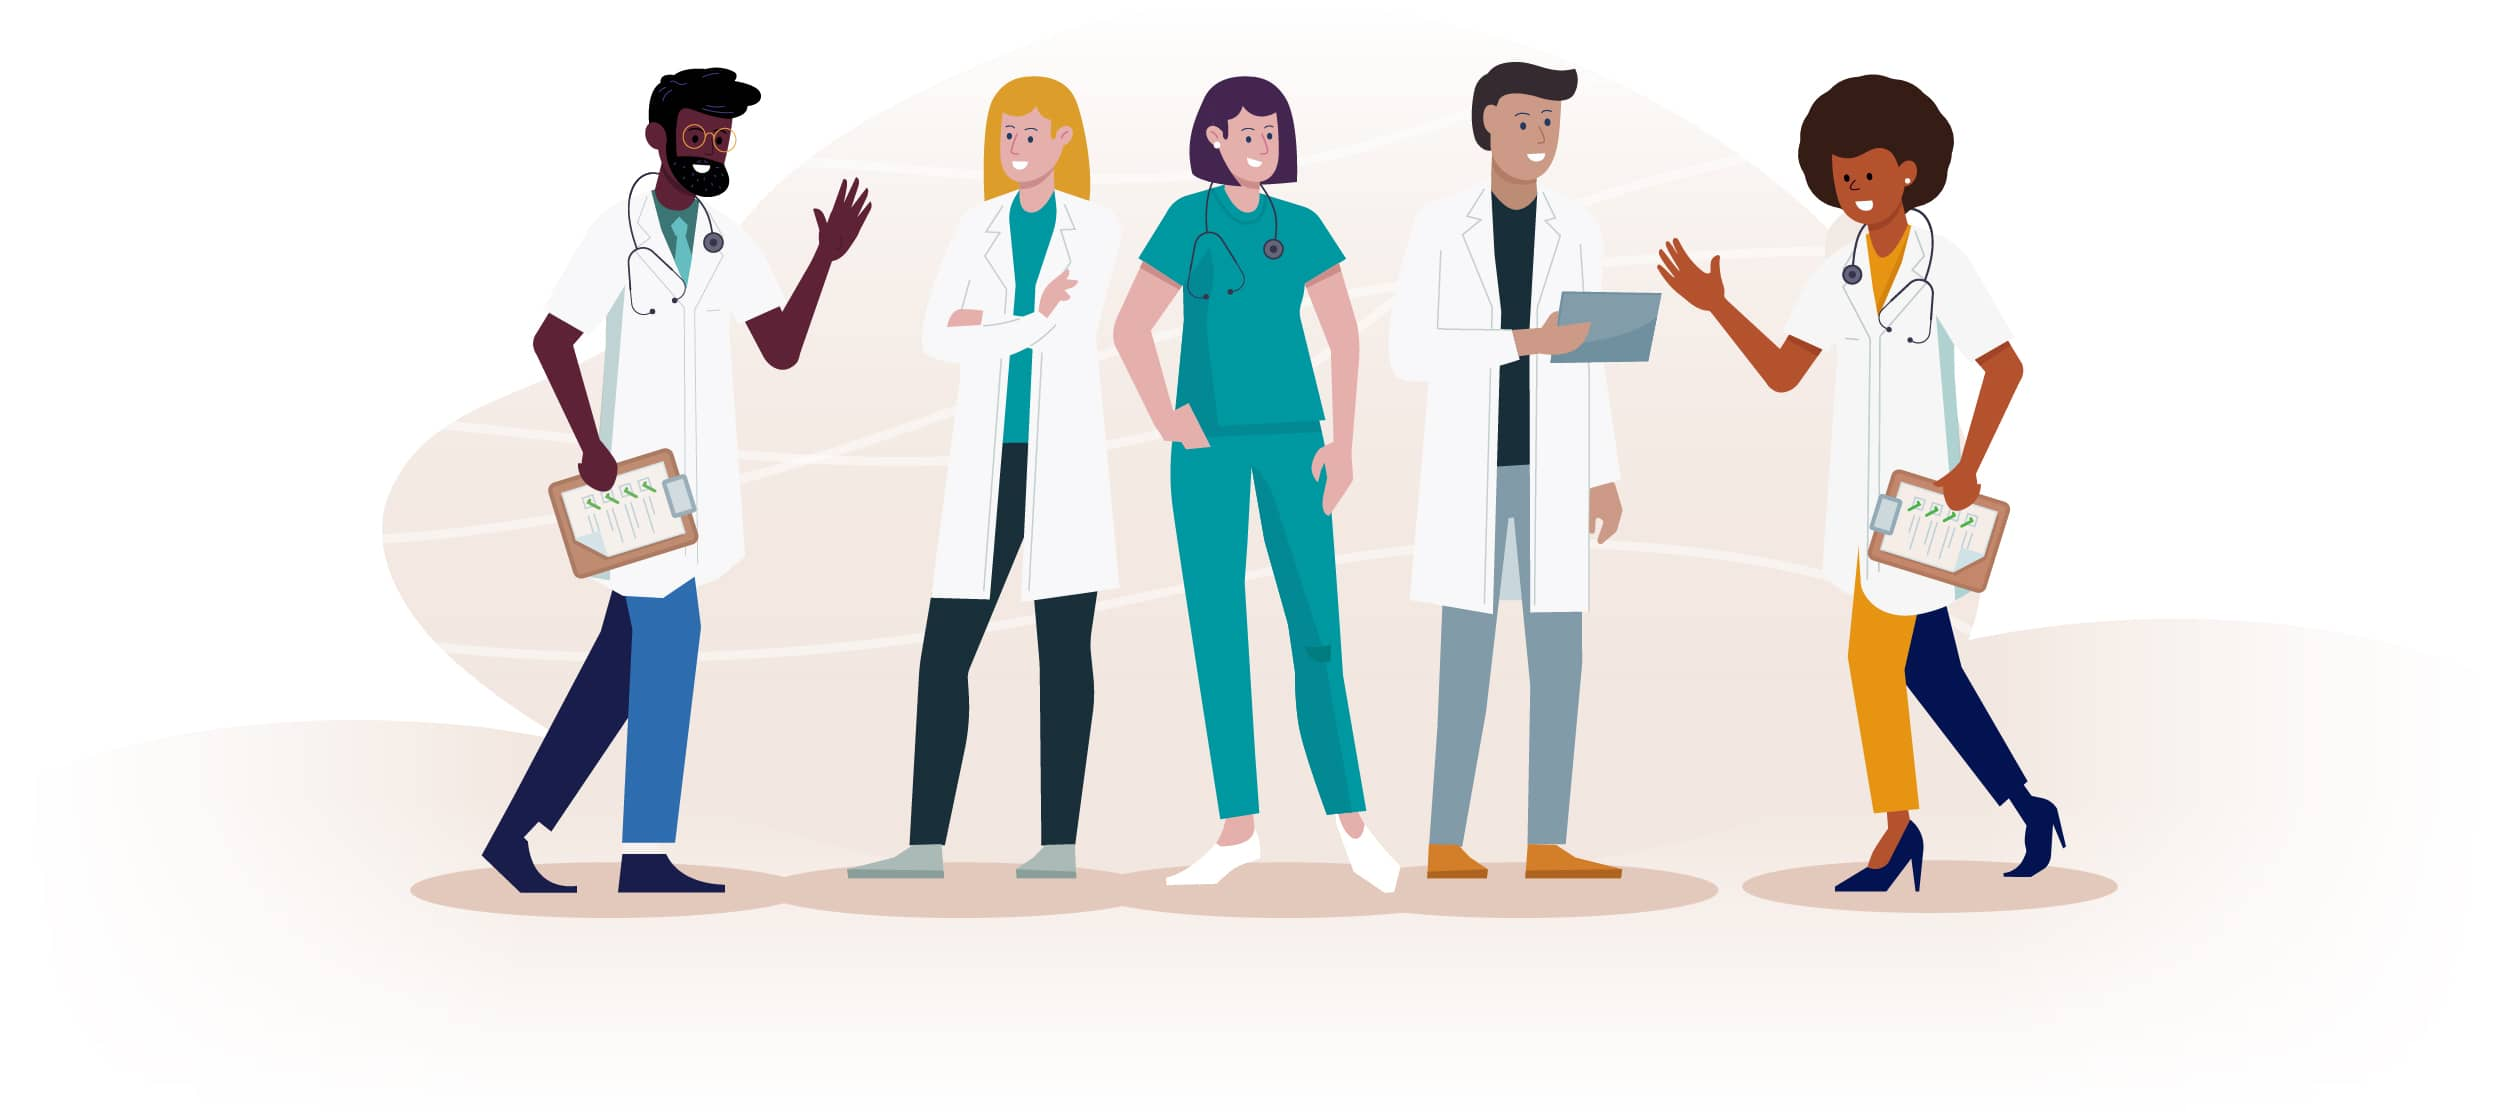 Illustration of people in the medical field